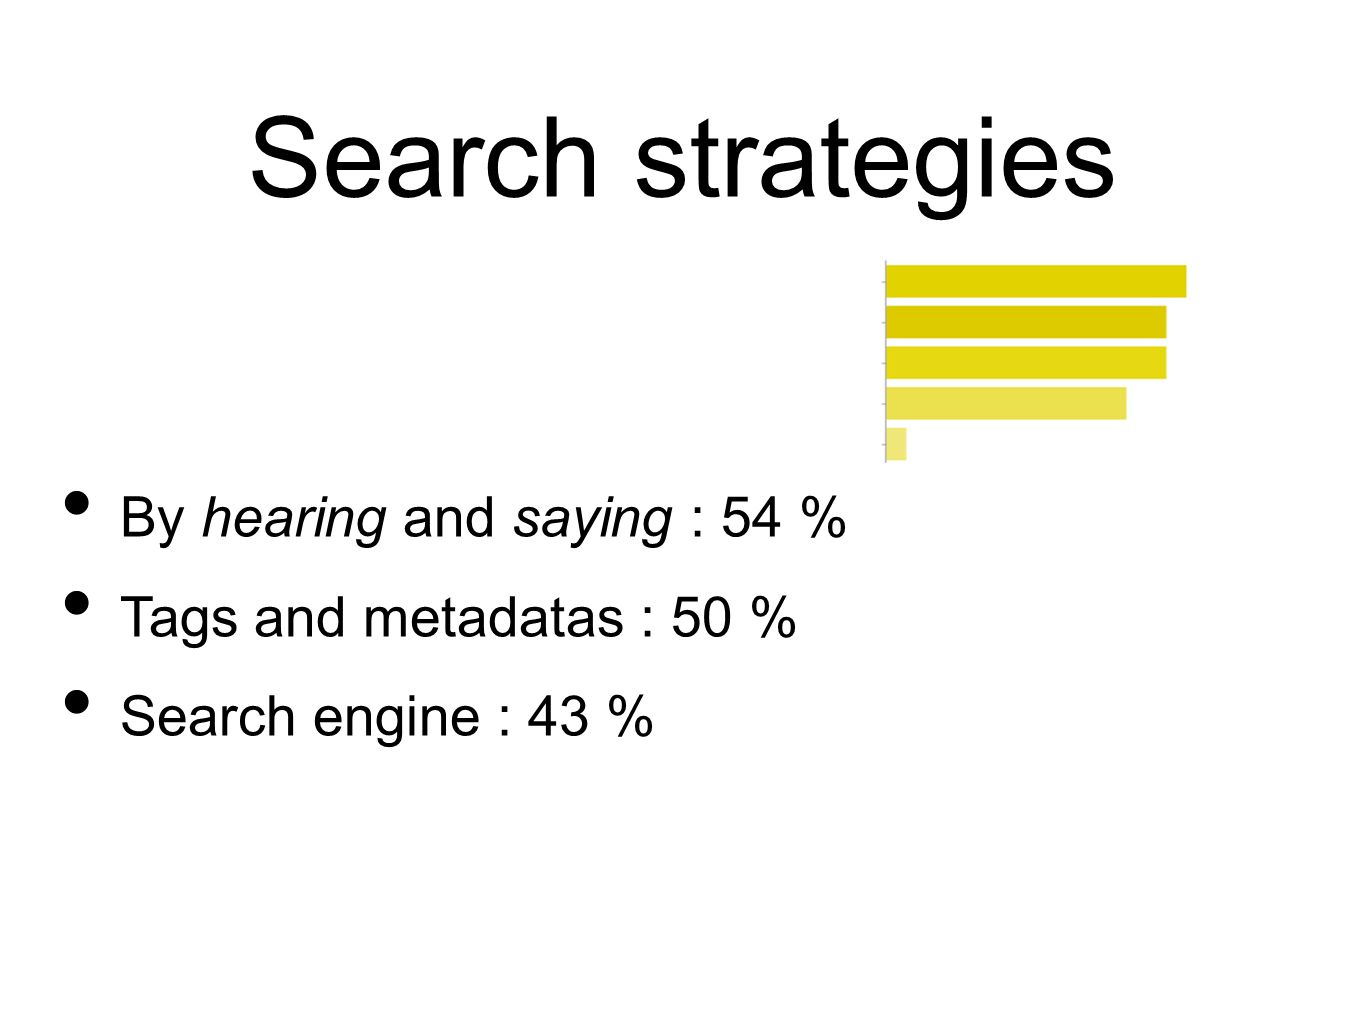 Search strategies By hearing and saying : 54 % Tags and metadatas : 50 % Search engine : 43 %